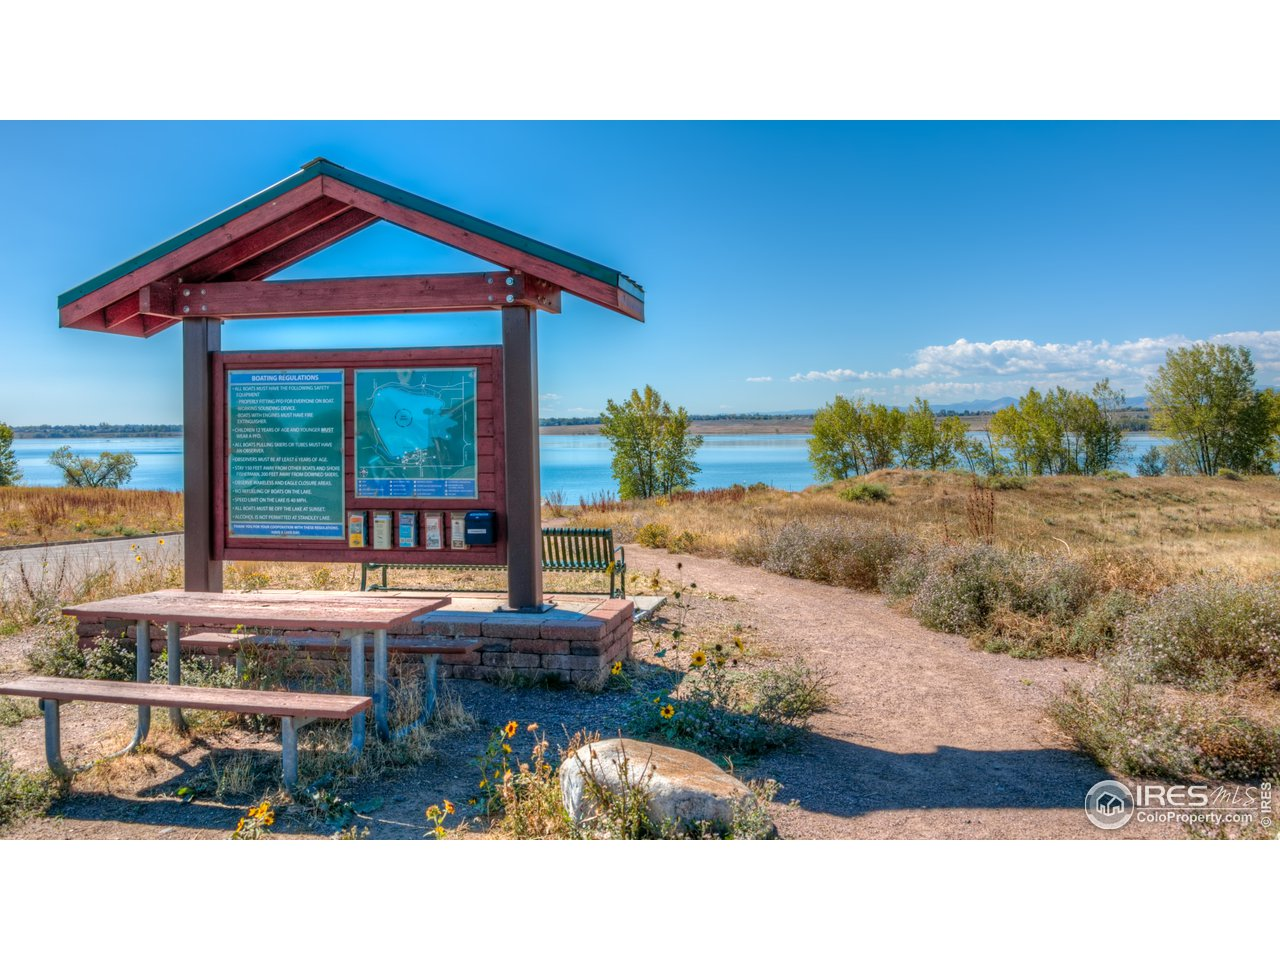 Standley Lake just south of Countryside for picnics, paddle boating, canoeing, camping, and an eagle preservation area